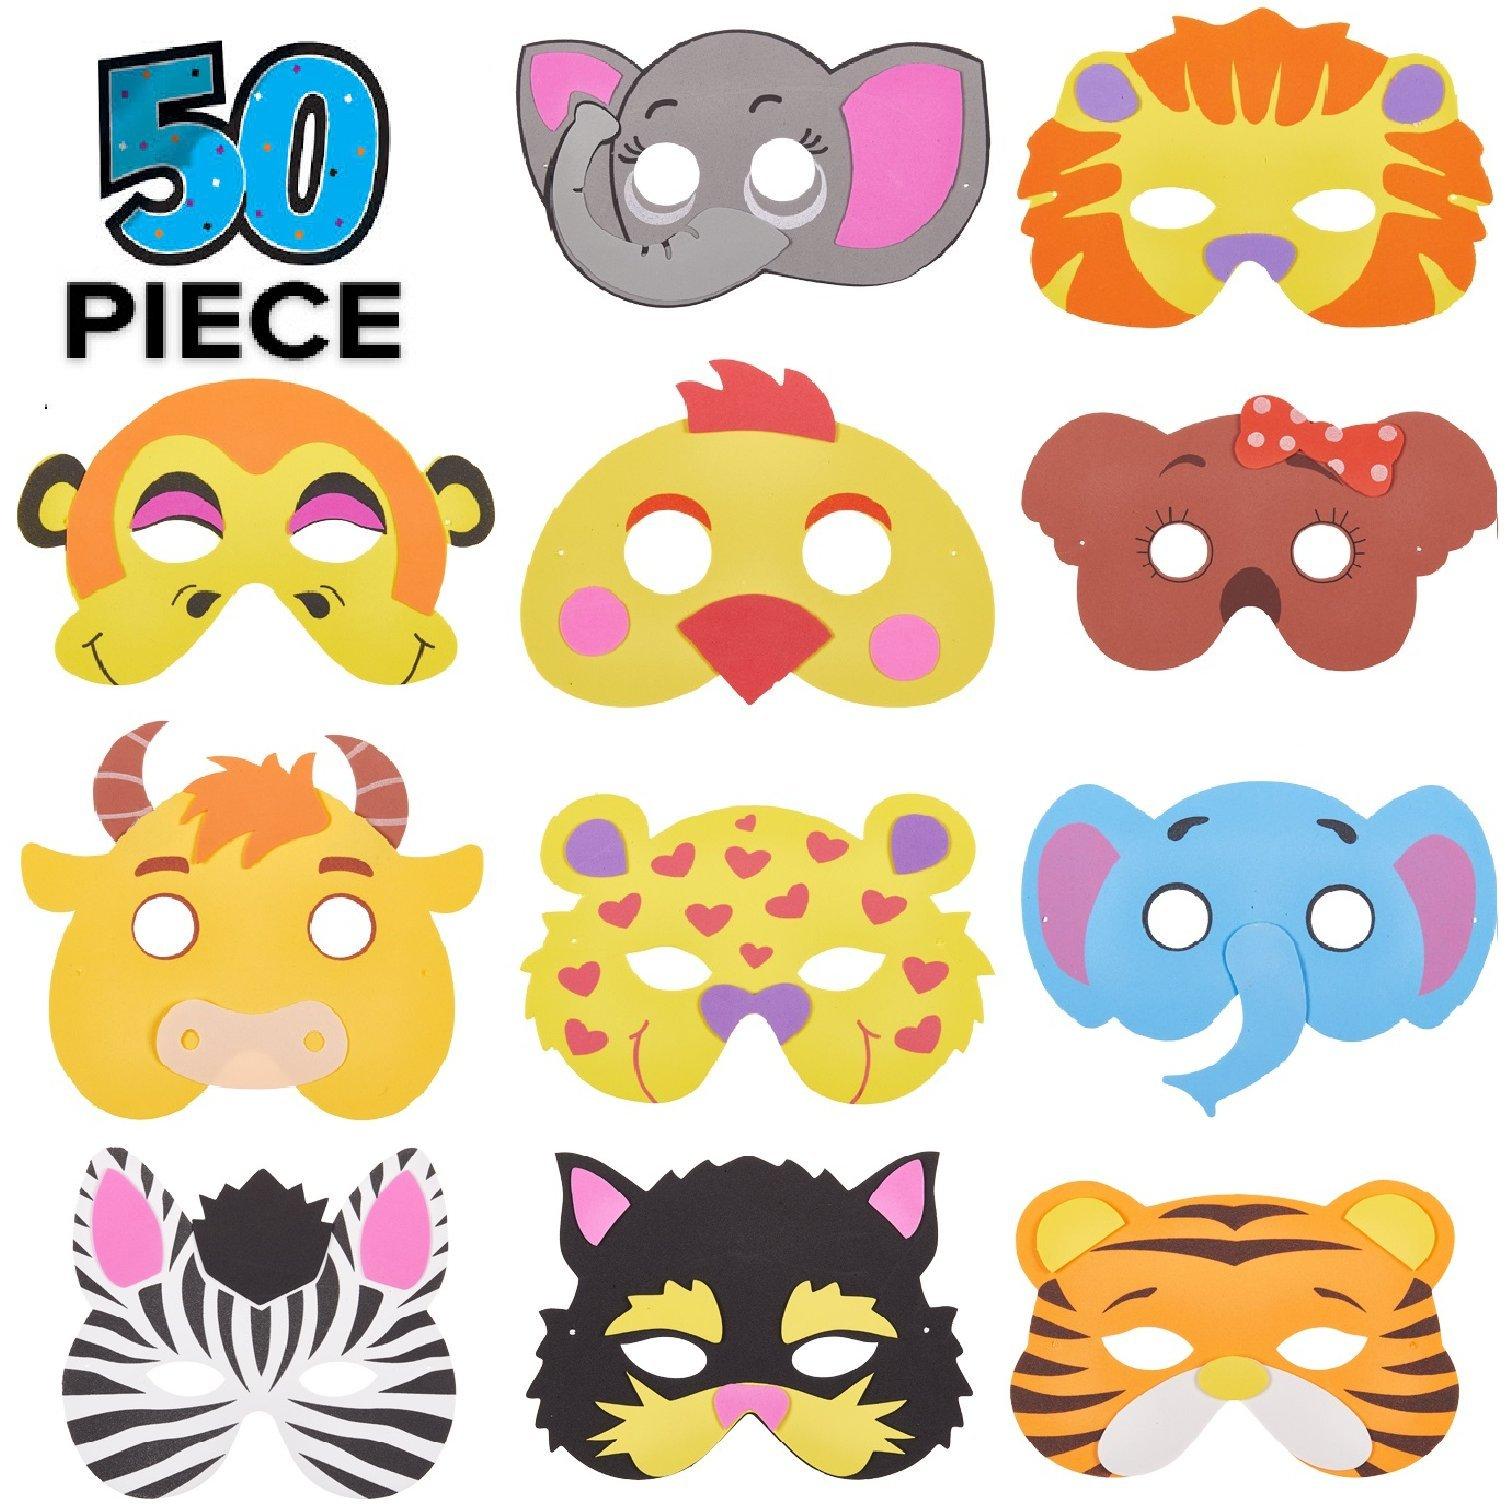 50 Piece Assorted Foam Animal Purim Masks Halloween Masks Dress-Up Party Accessory by Prextex